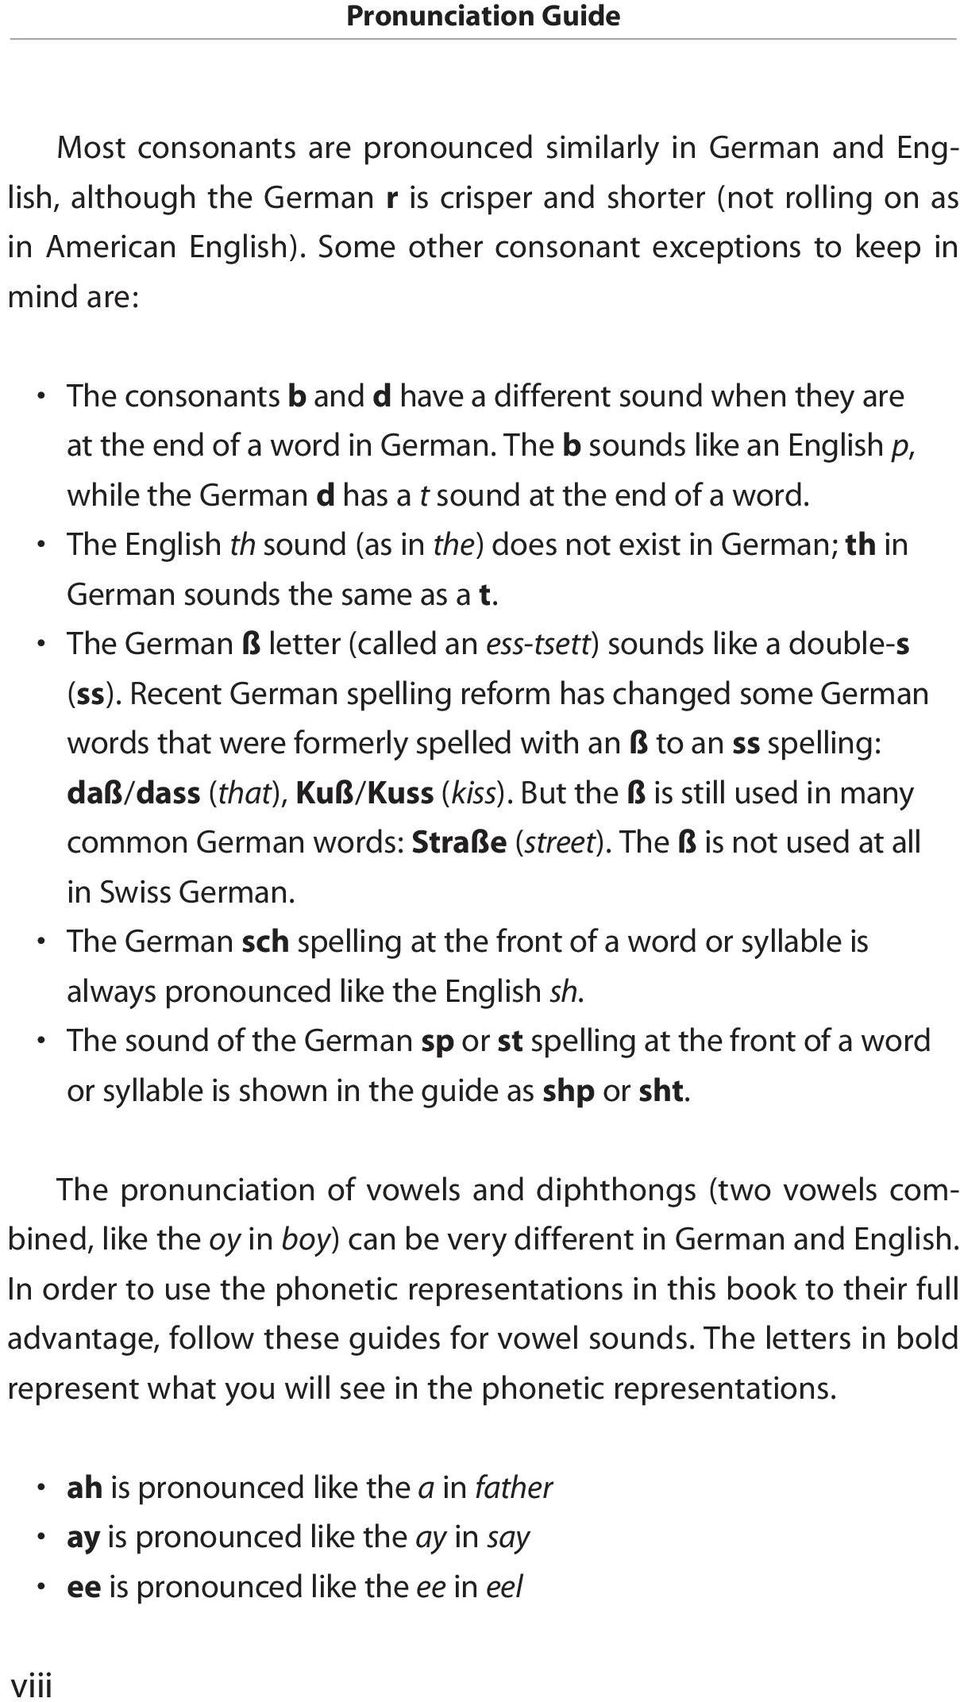 The b sounds like an English p, while the German d has a t sound at the end of a word. The English th sound (as in the) does not exist in German; th in German sounds the same as a t.